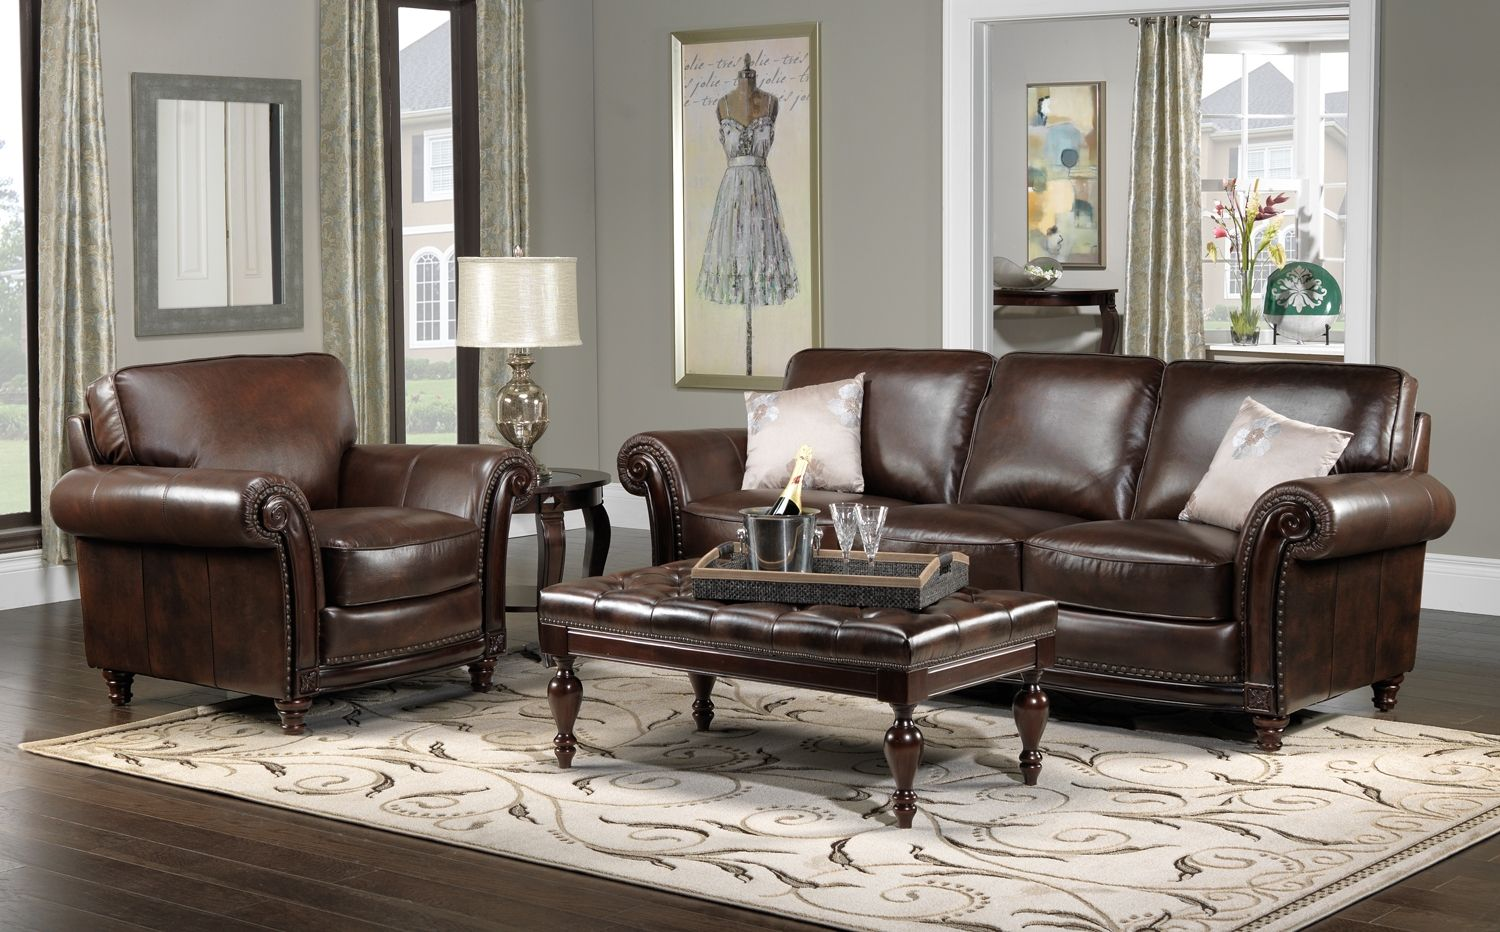 Living Room Paint Ideas Brown Couches charcoal grey couch decorating. tan couches decorating ideas brown